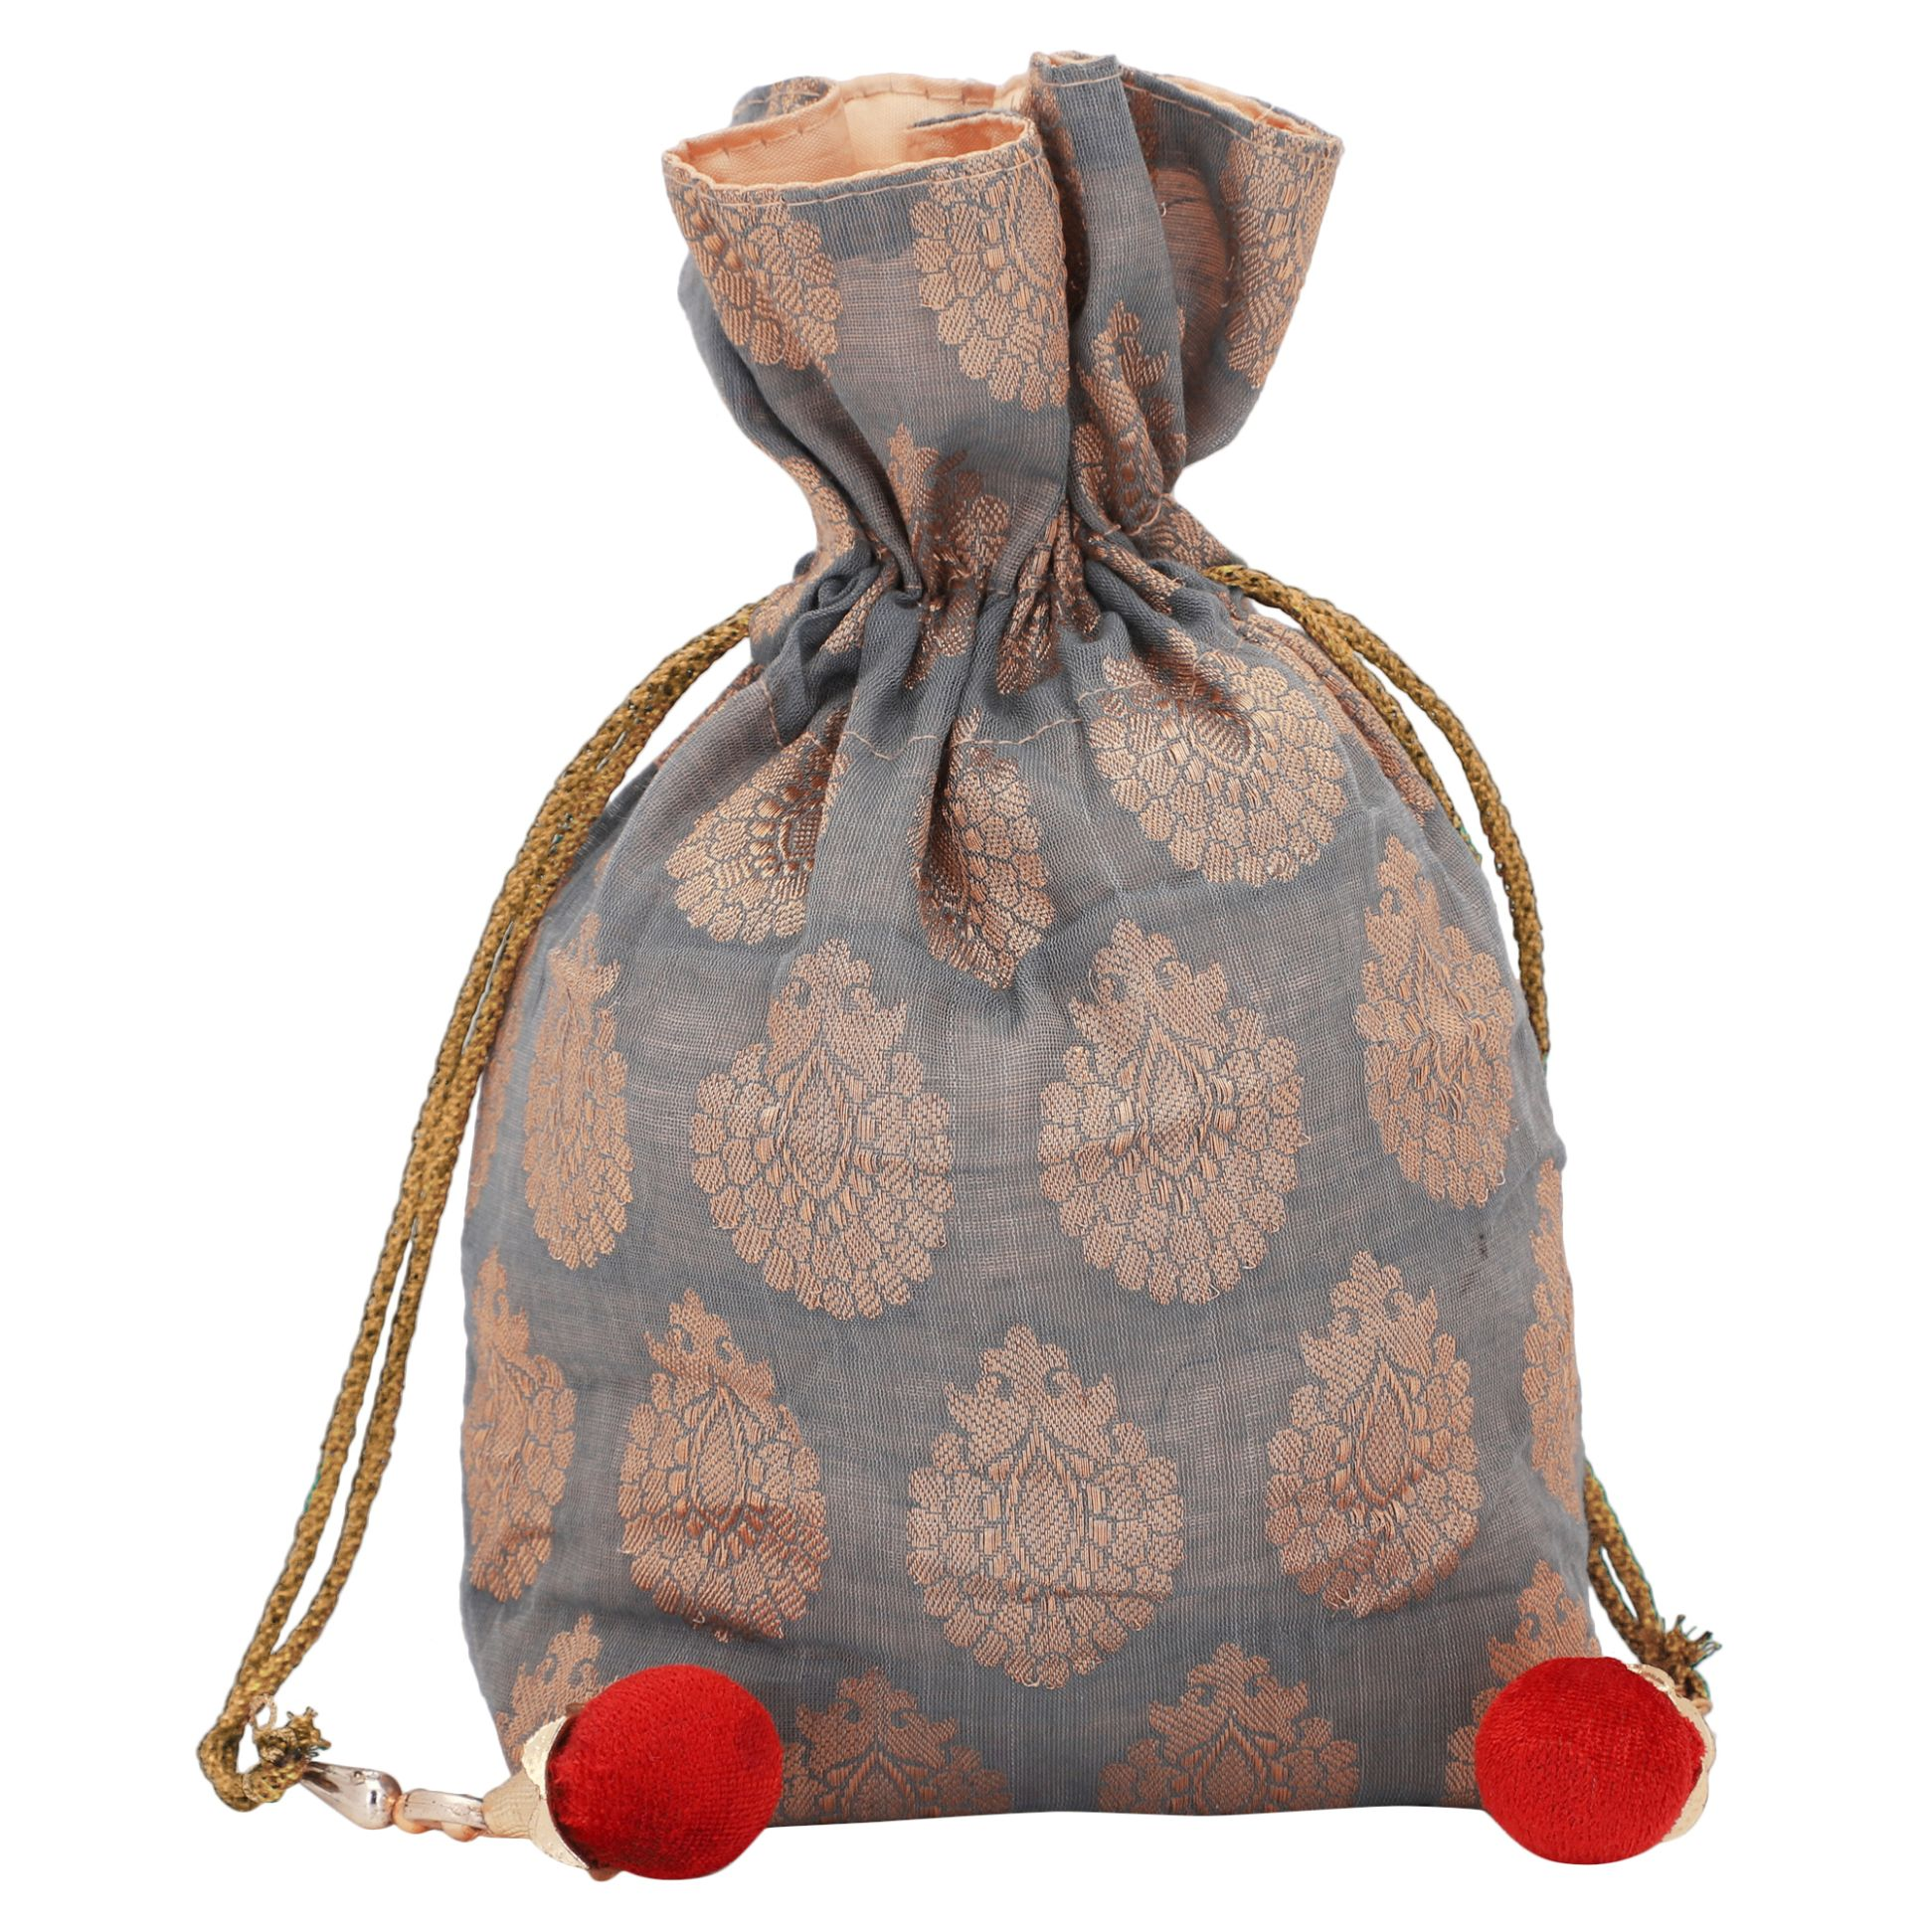 Banarasi Chanderi Jacquard Potli Bag in Grey